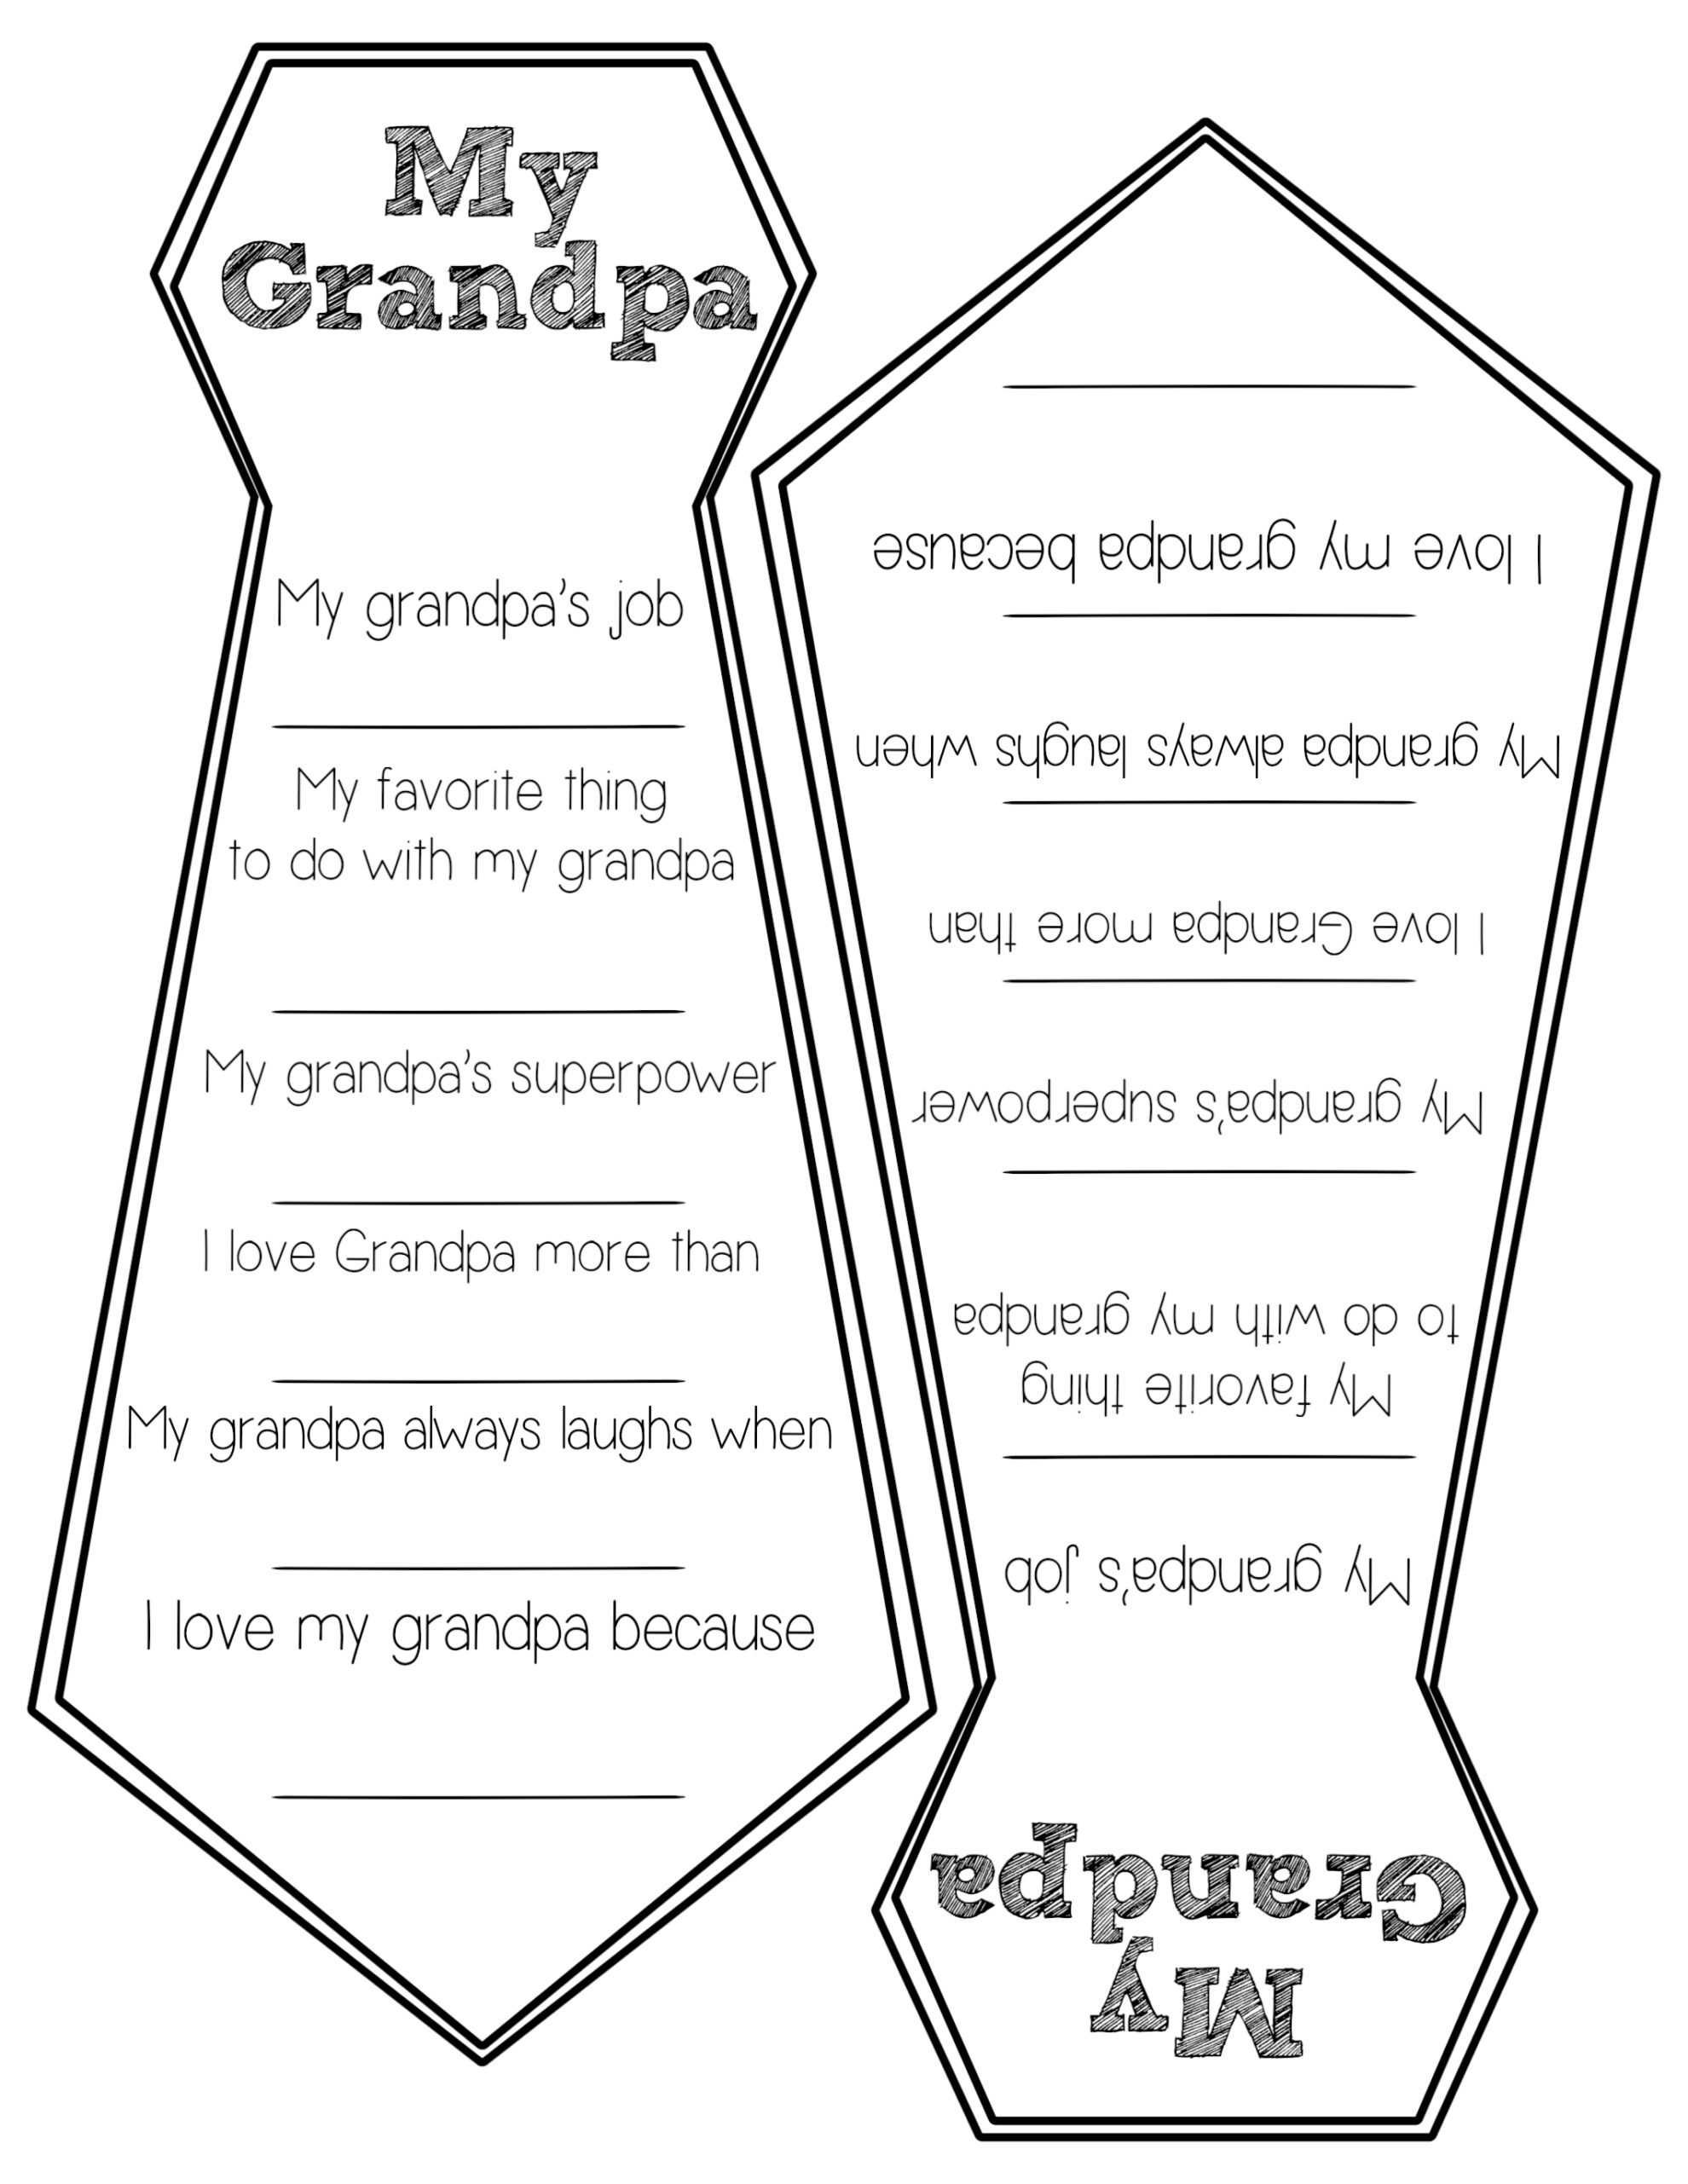 graphic relating to Father's Day Printable called Fathers Working day Free of charge Printable Playing cards - Paper Path Style